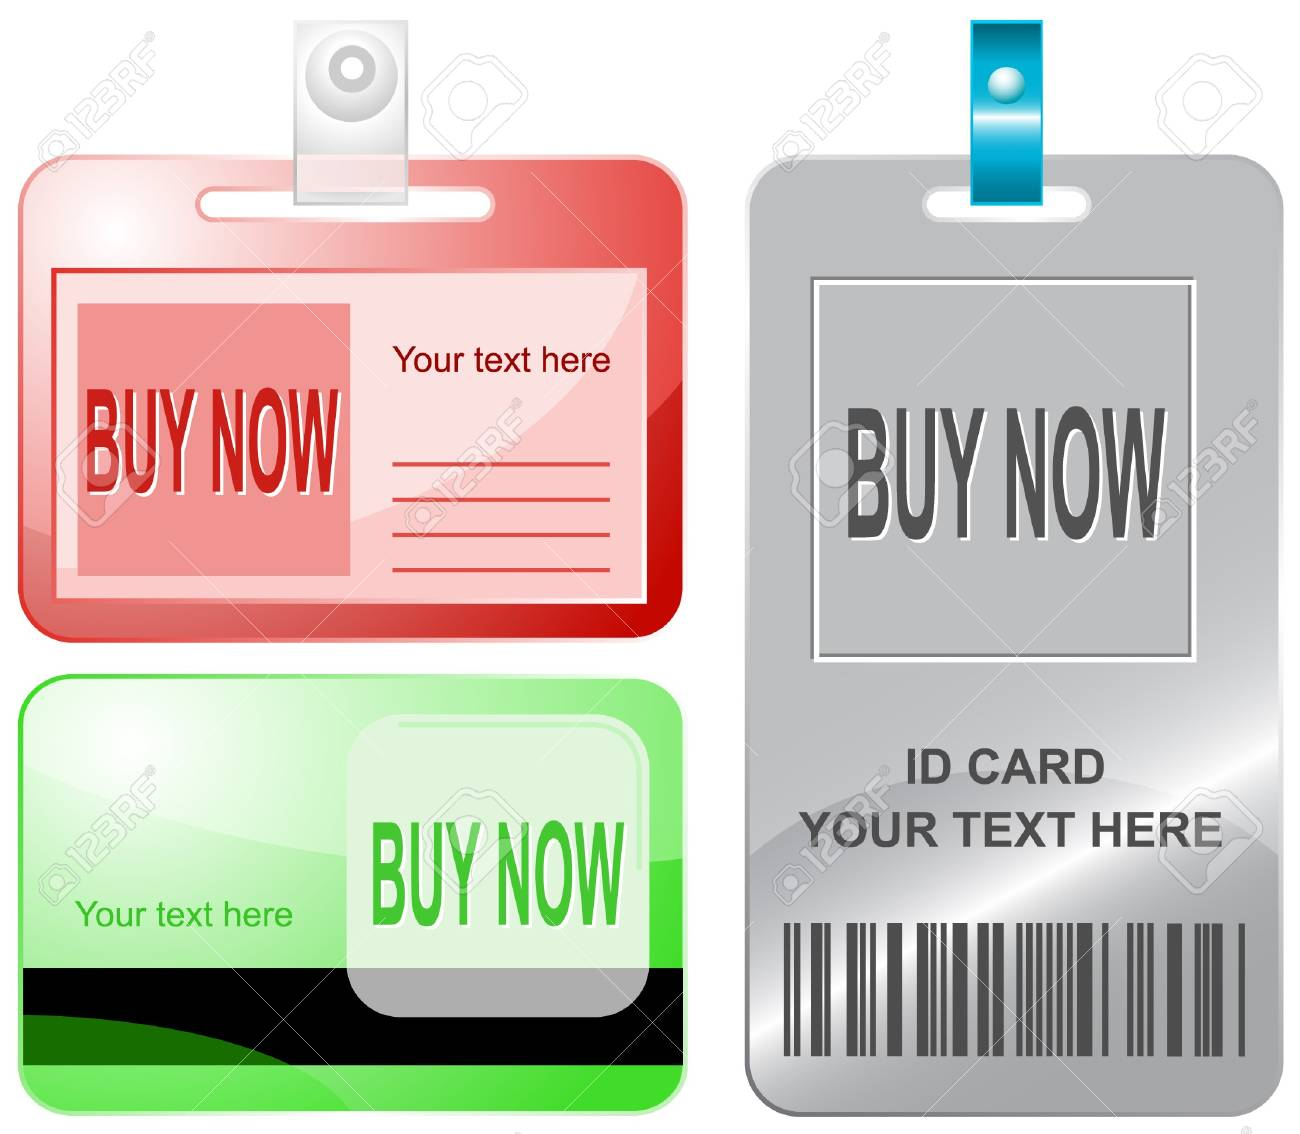 Buy now. id cards. Stock Vector - 7176220